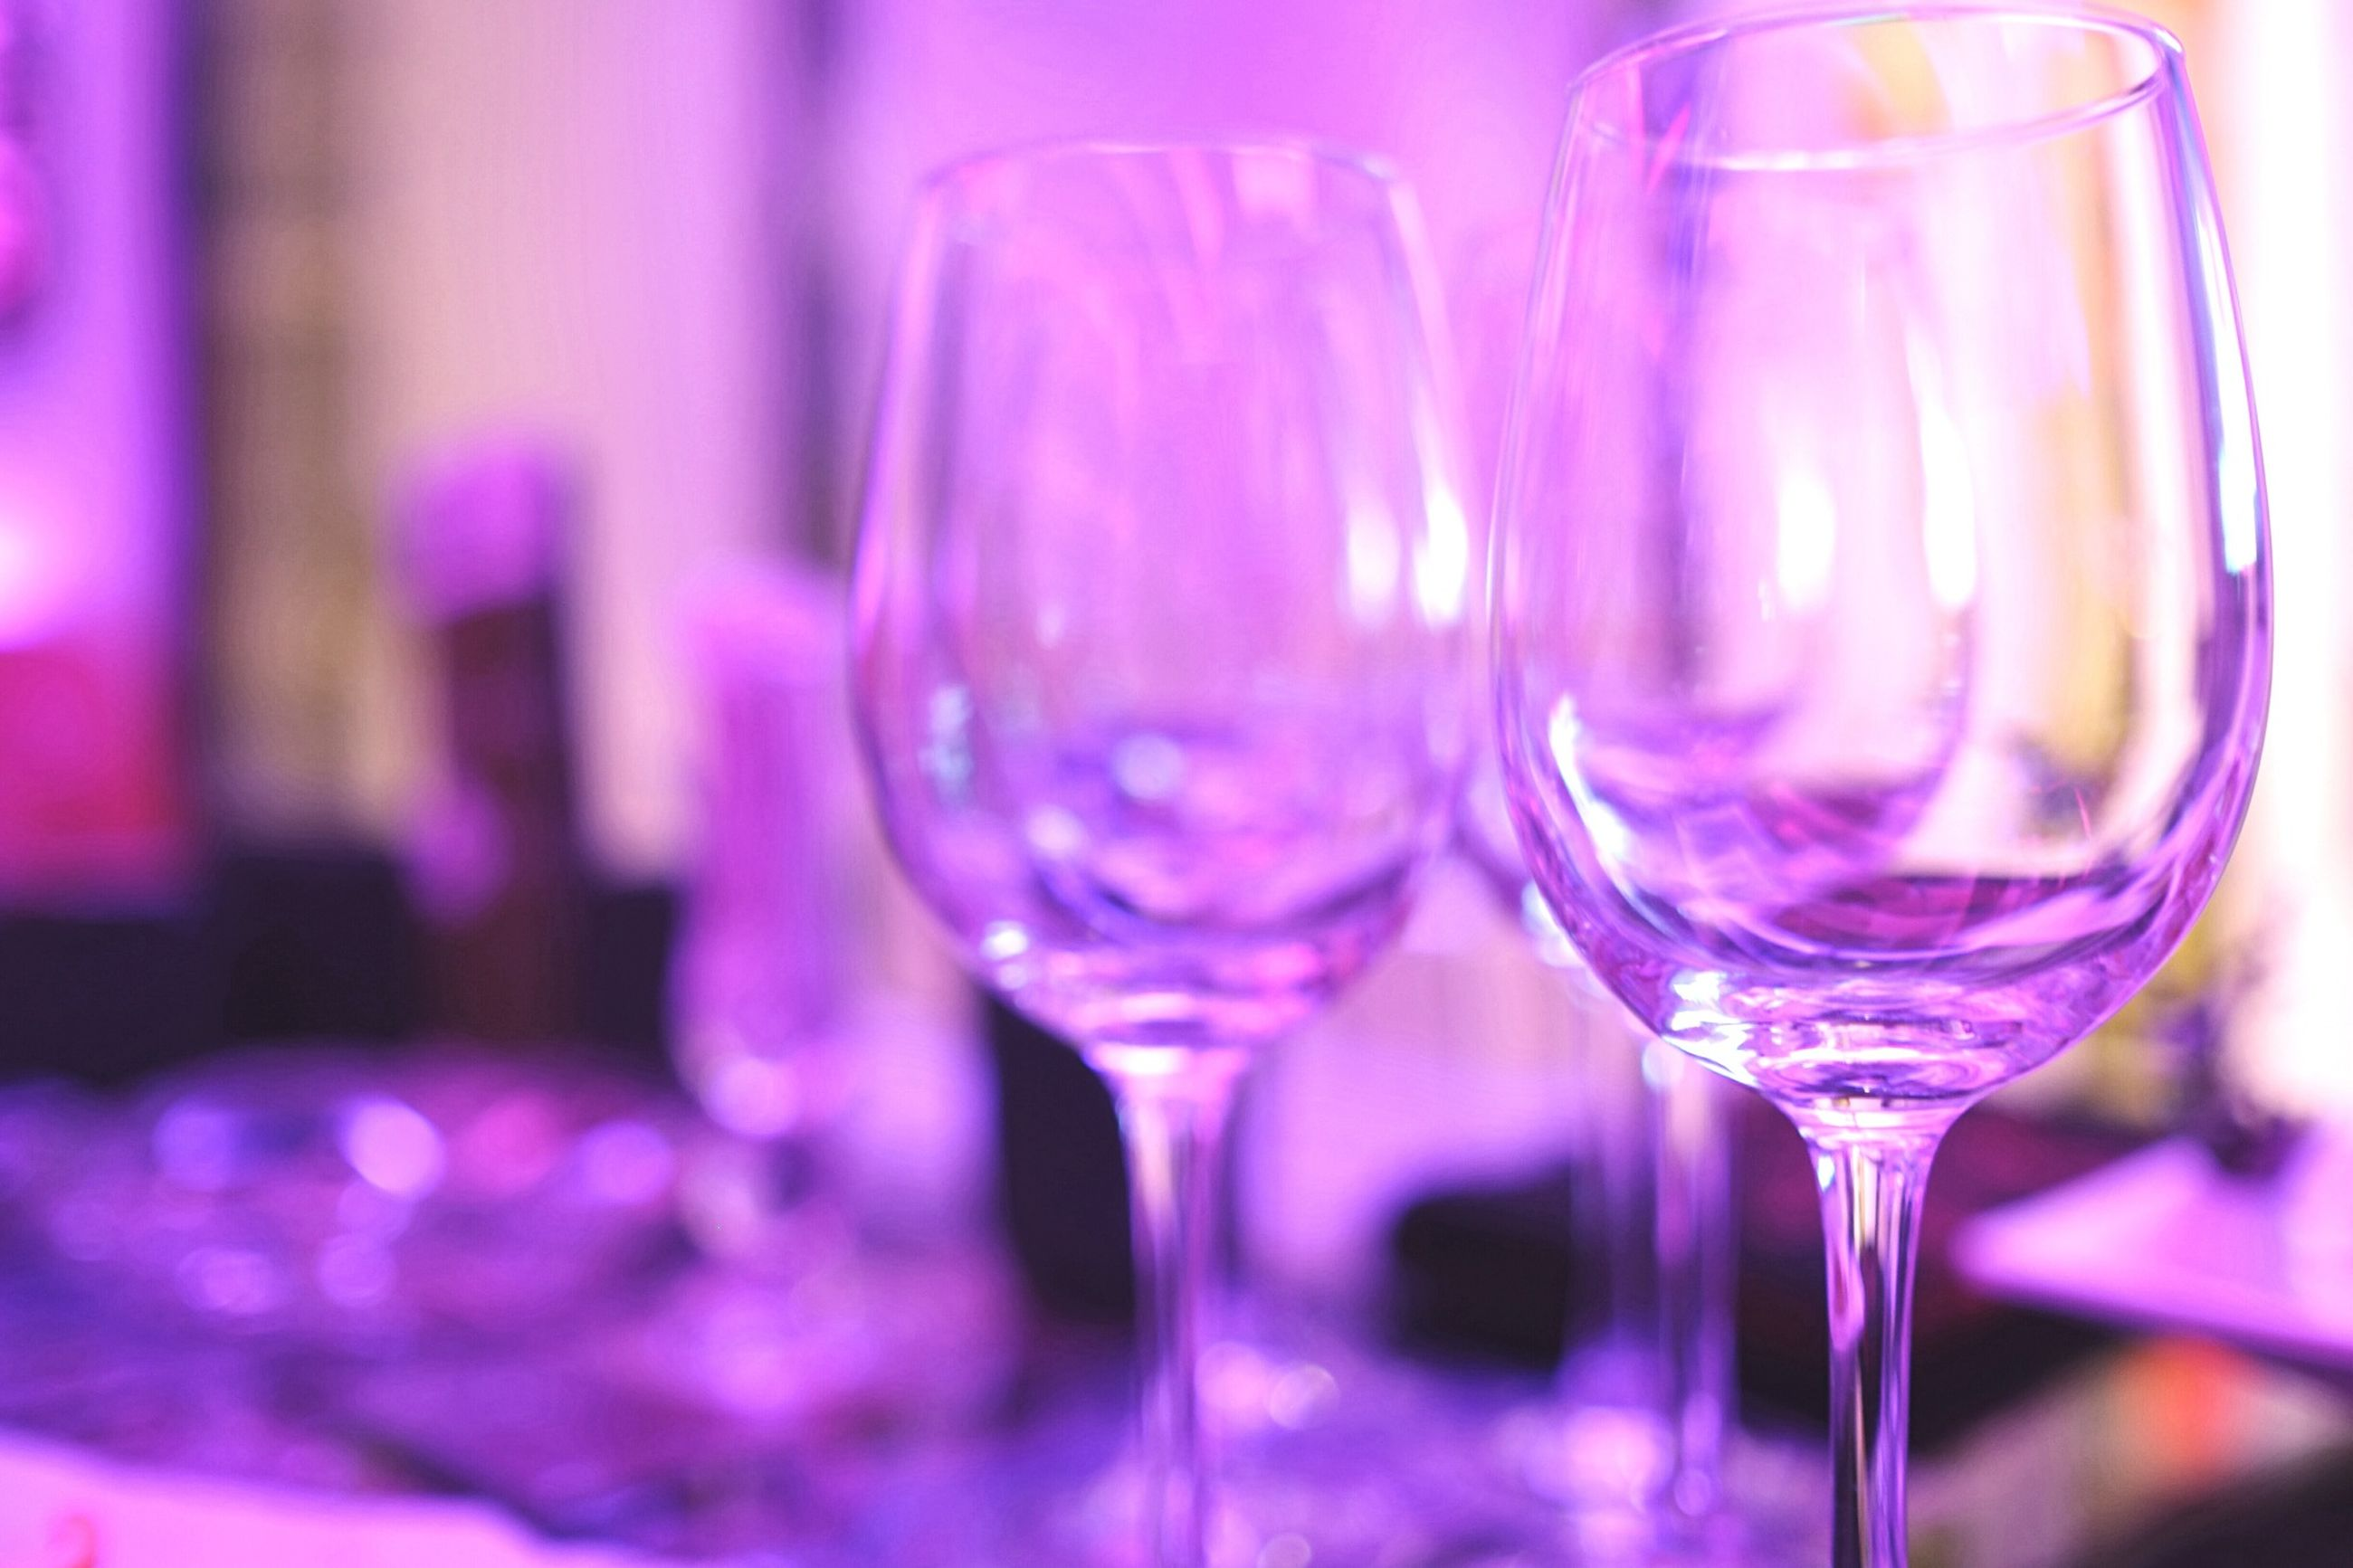 glass - material, transparent, indoors, drinking glass, freshness, drink, close-up, wineglass, refreshment, fragility, food and drink, focus on foreground, table, glass, still life, selective focus, flower, alcohol, wine, pink color